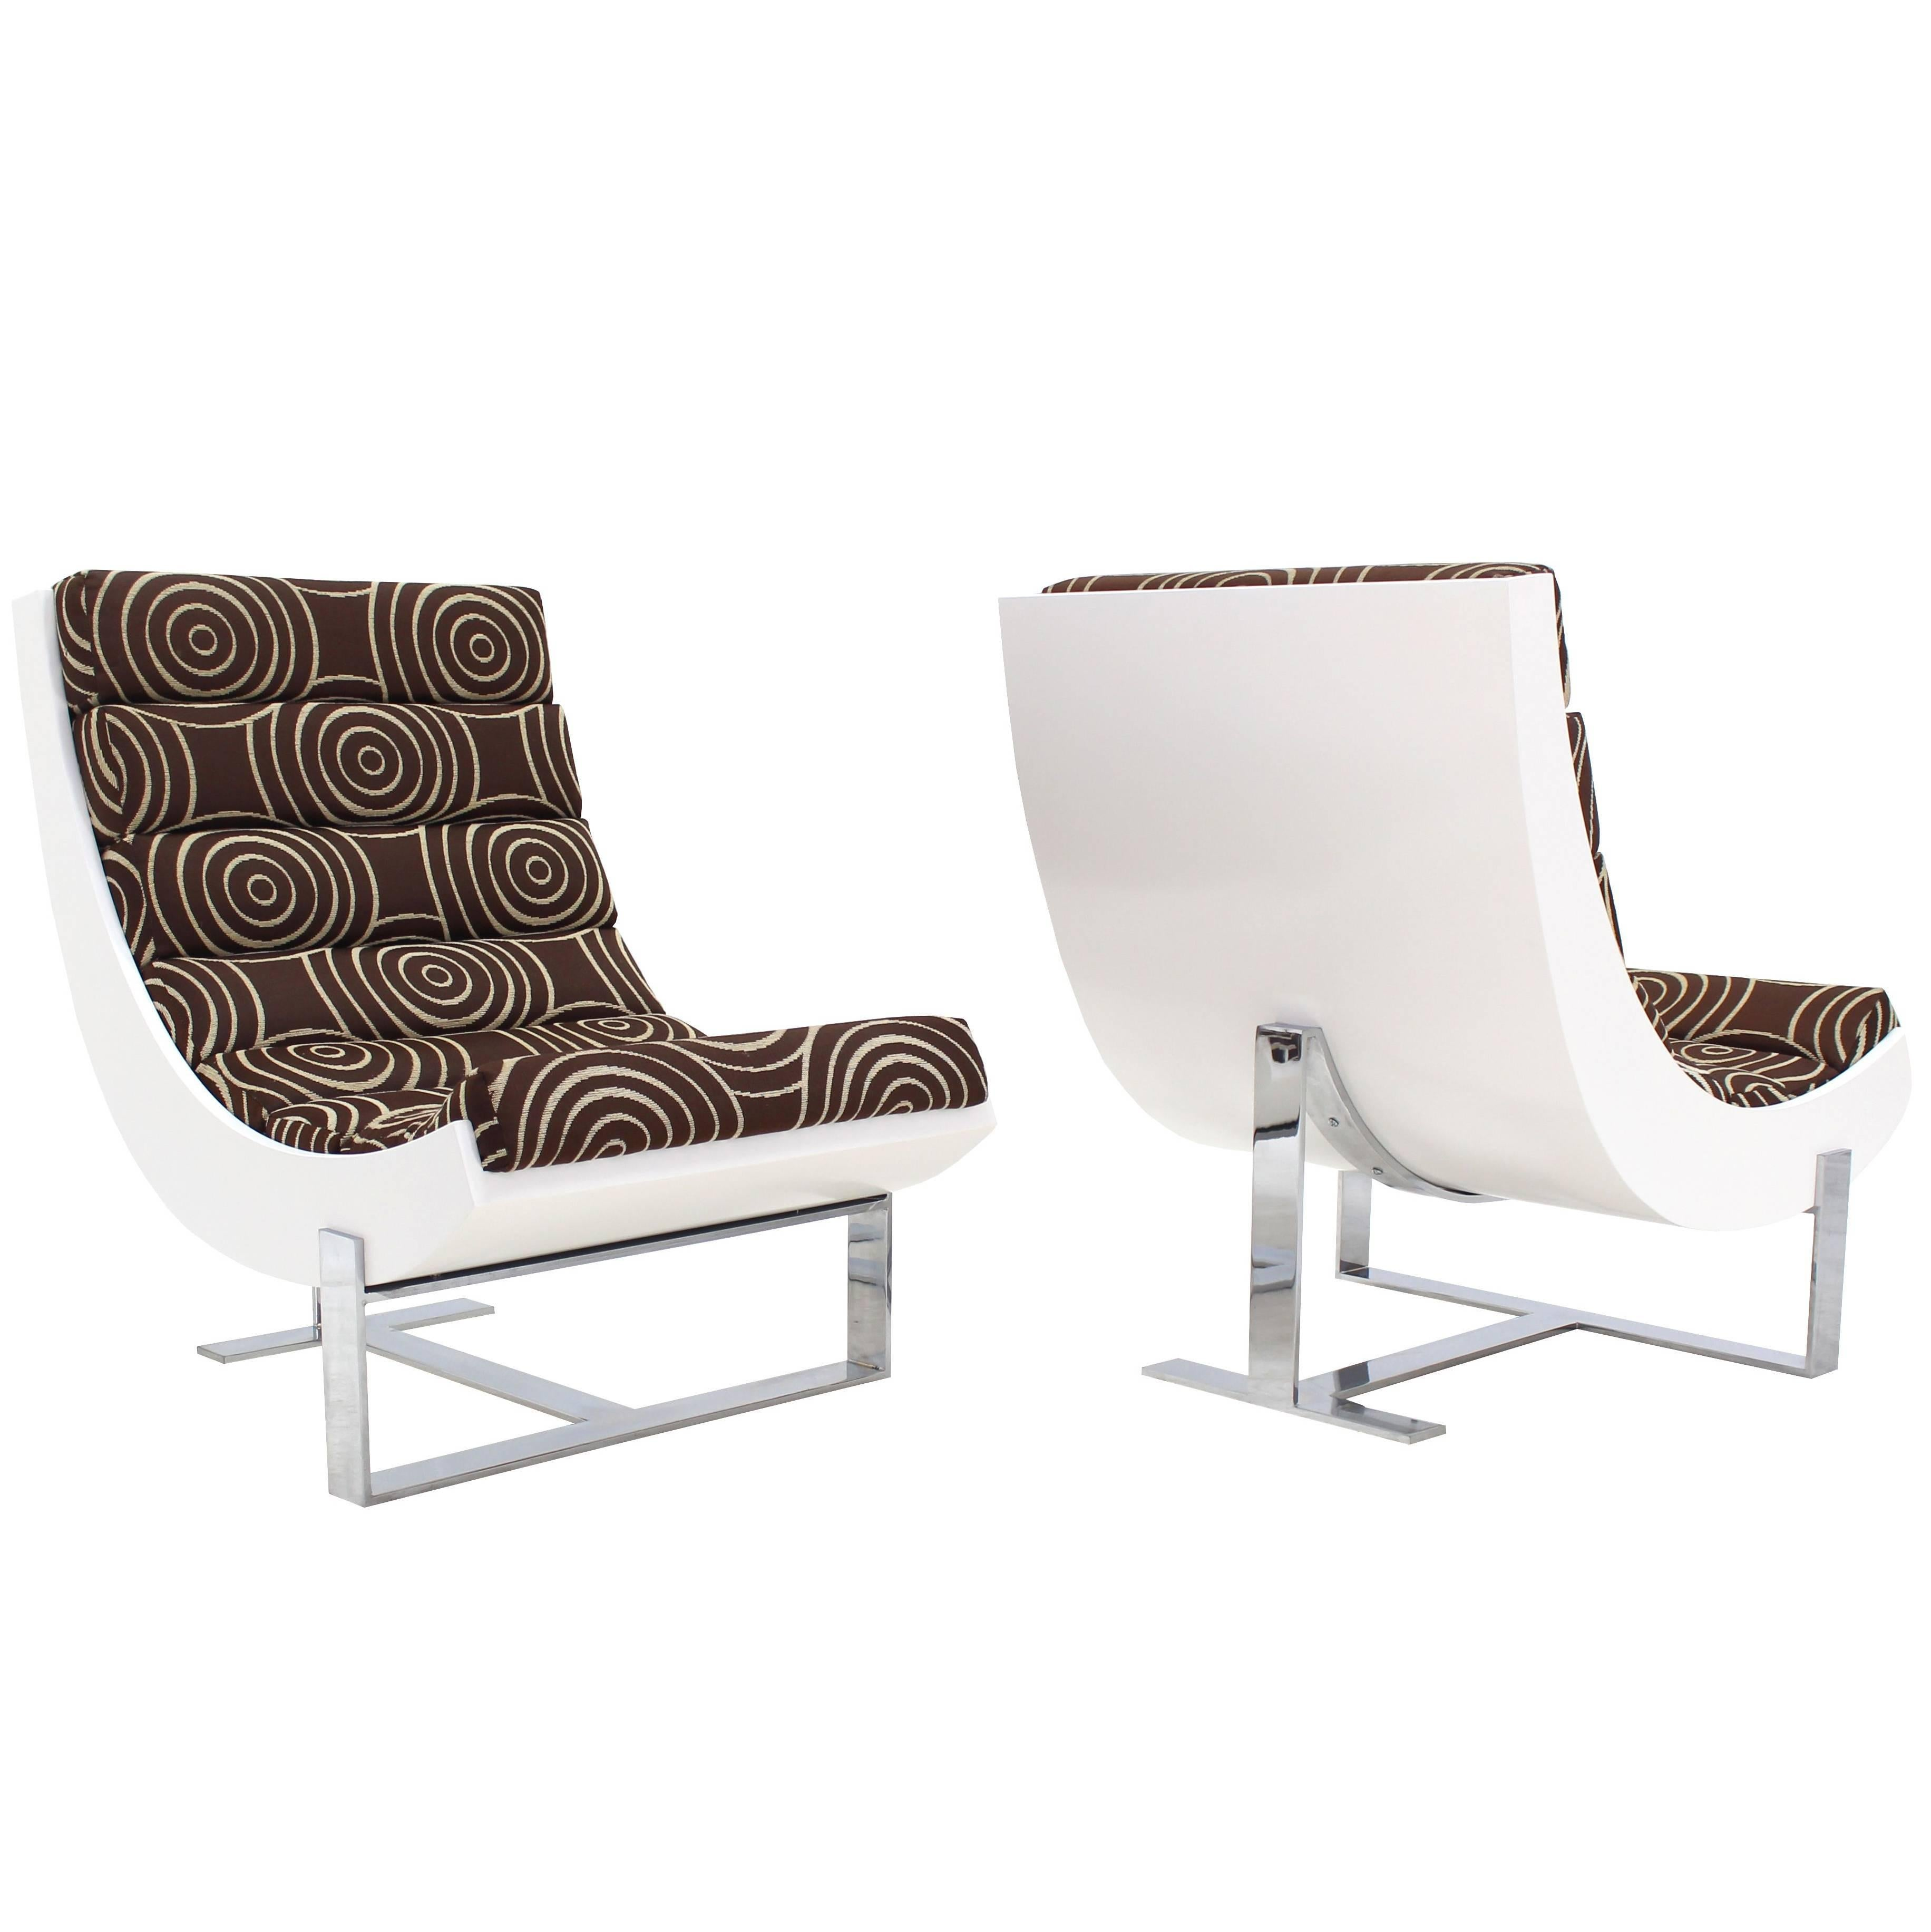 Pair of White Lacquer Chrome Bases Scoop Lounge Chairs Mid Century Modern